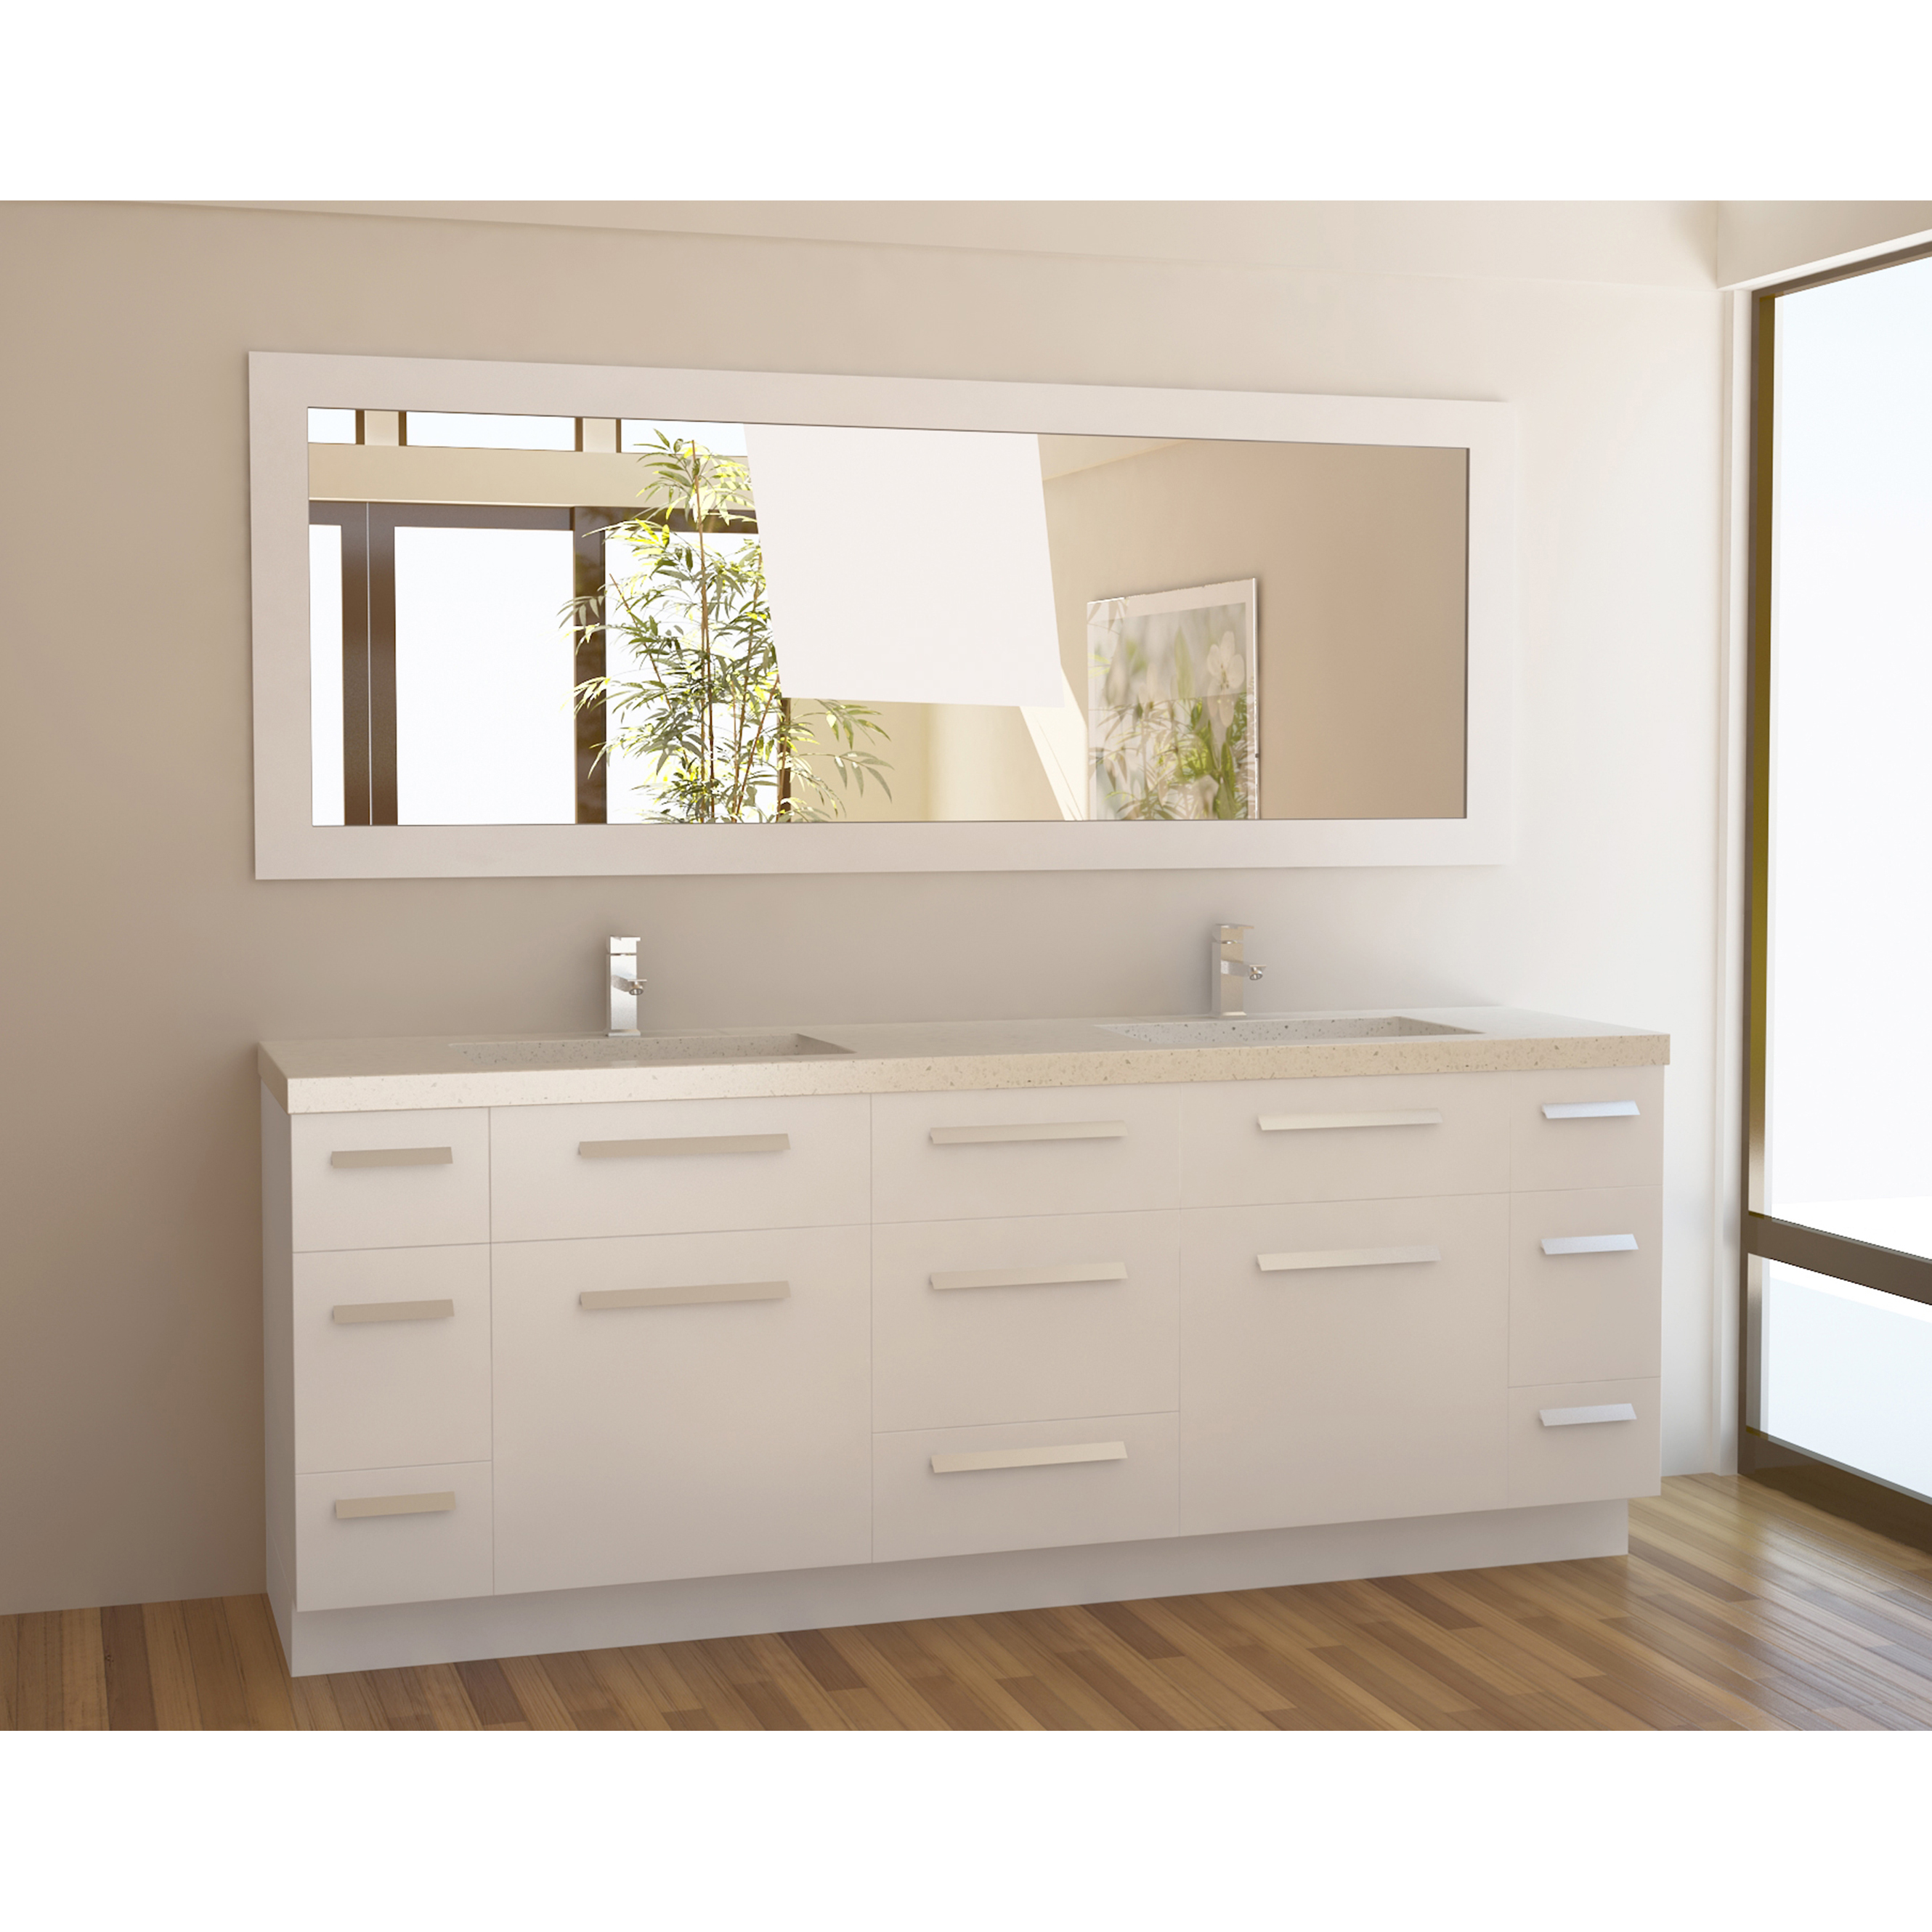 Bathroom Vanity Furniture Bathroom Vanities and Vanity